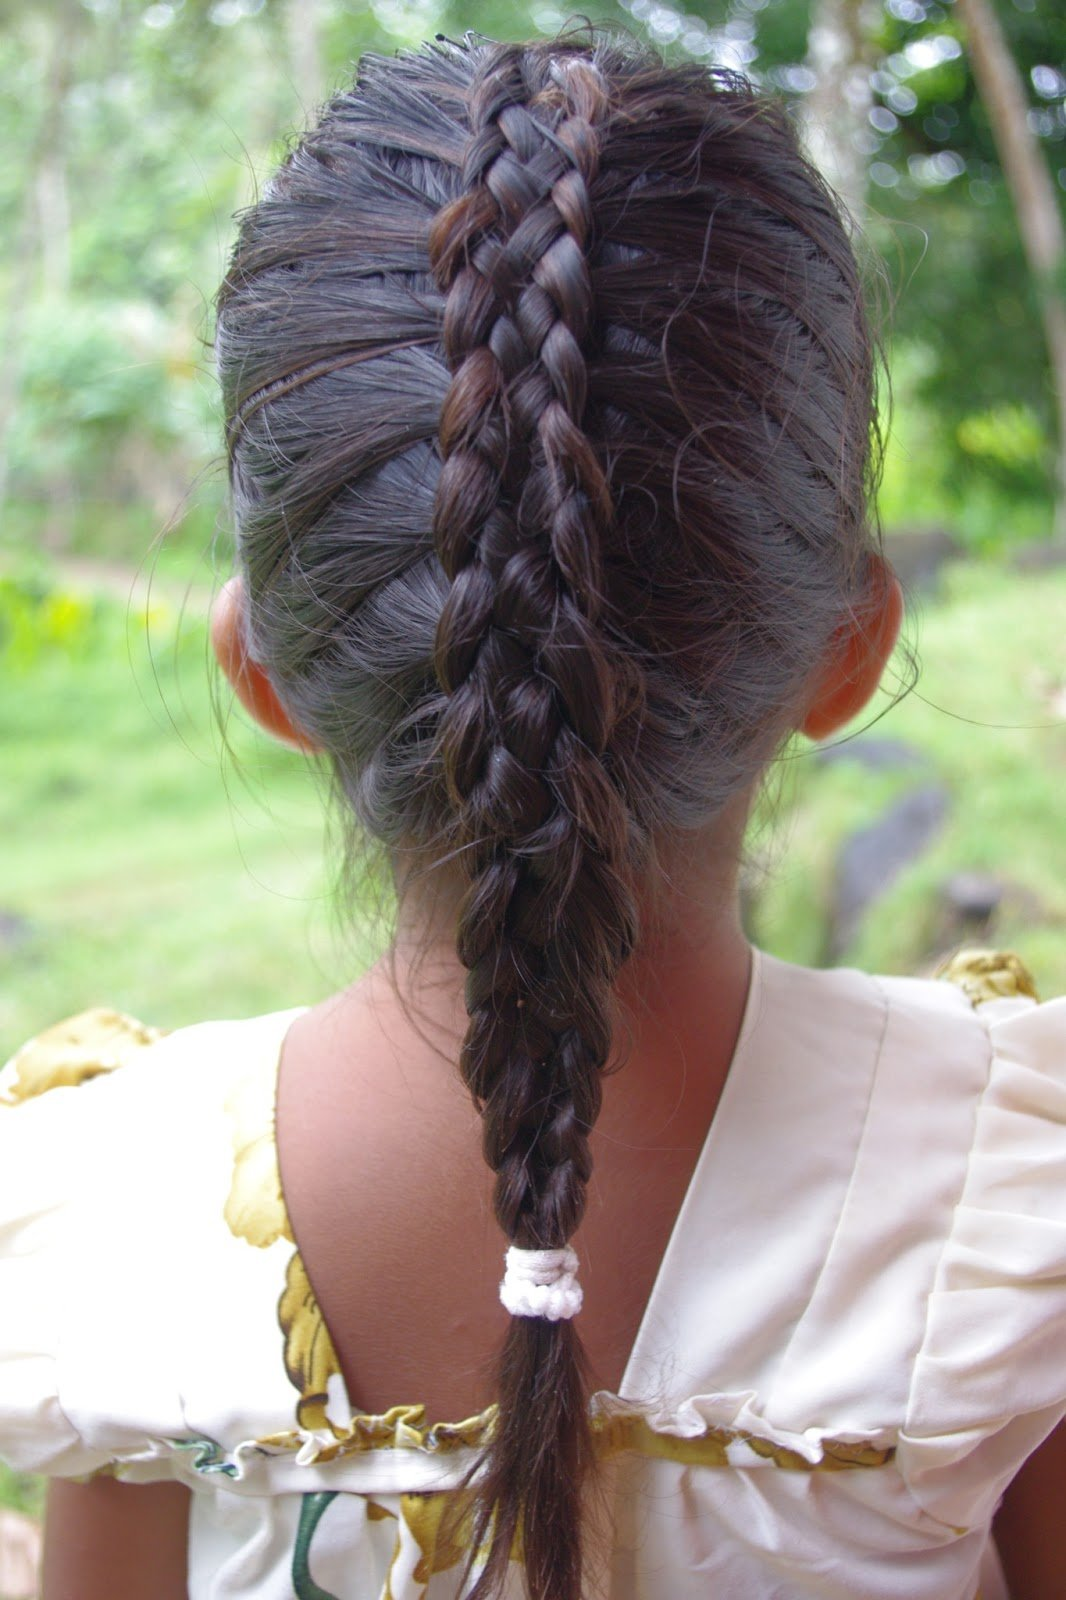 New Braids Hairstyles For Super Long Hair Micronesian Girl Two Cute Braided Hairstyles For Big Ideas With Pictures Original 1024 x 768